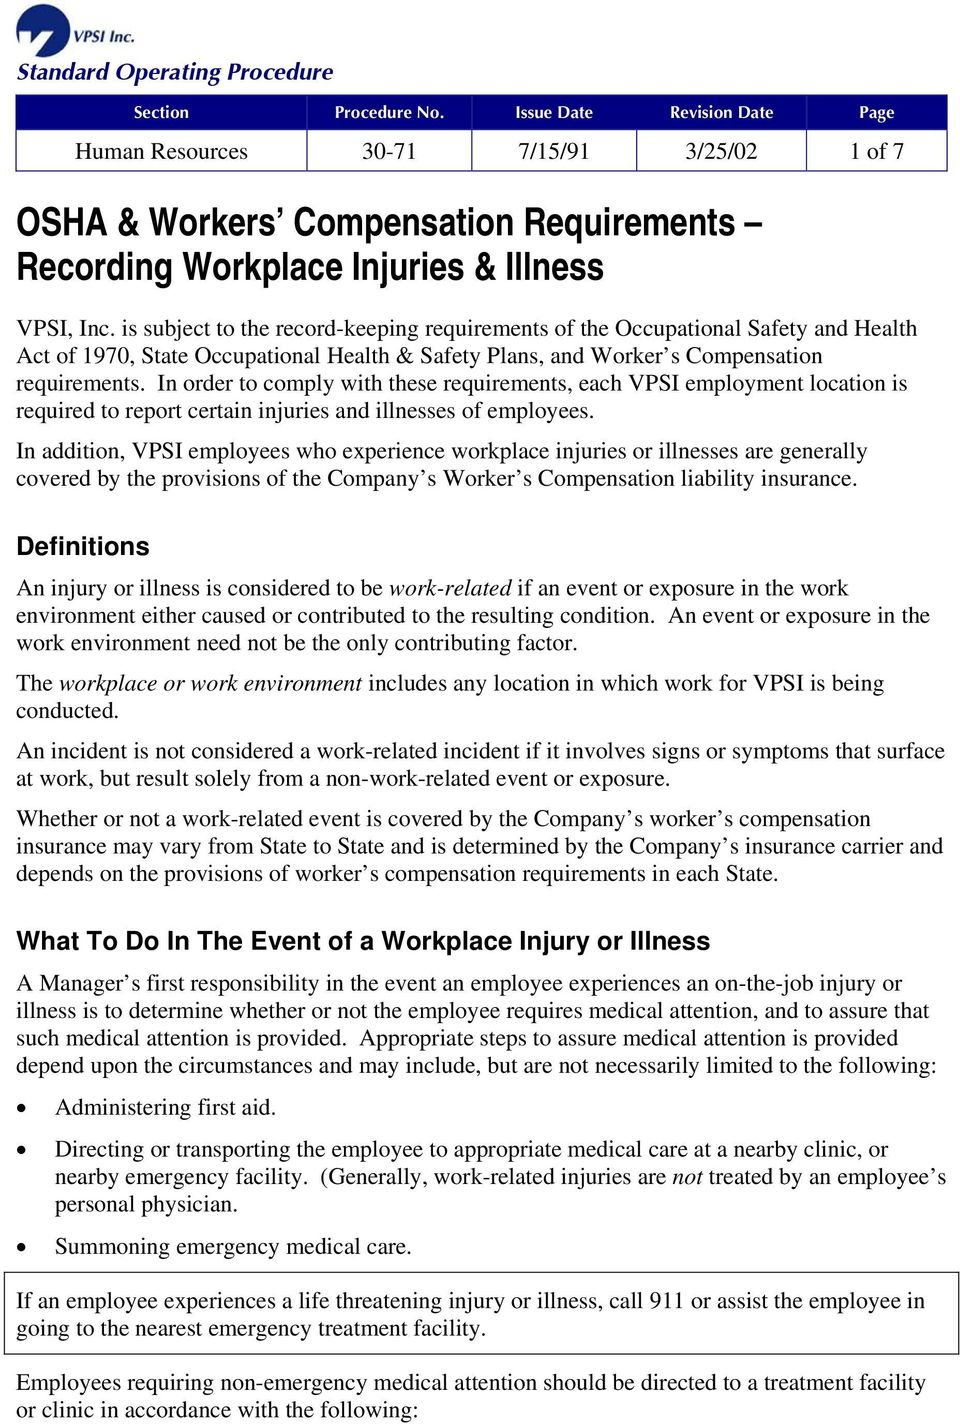 In order to comply with these requirements, each VPSI employment location is required to report certain injuries and illnesses of employees.